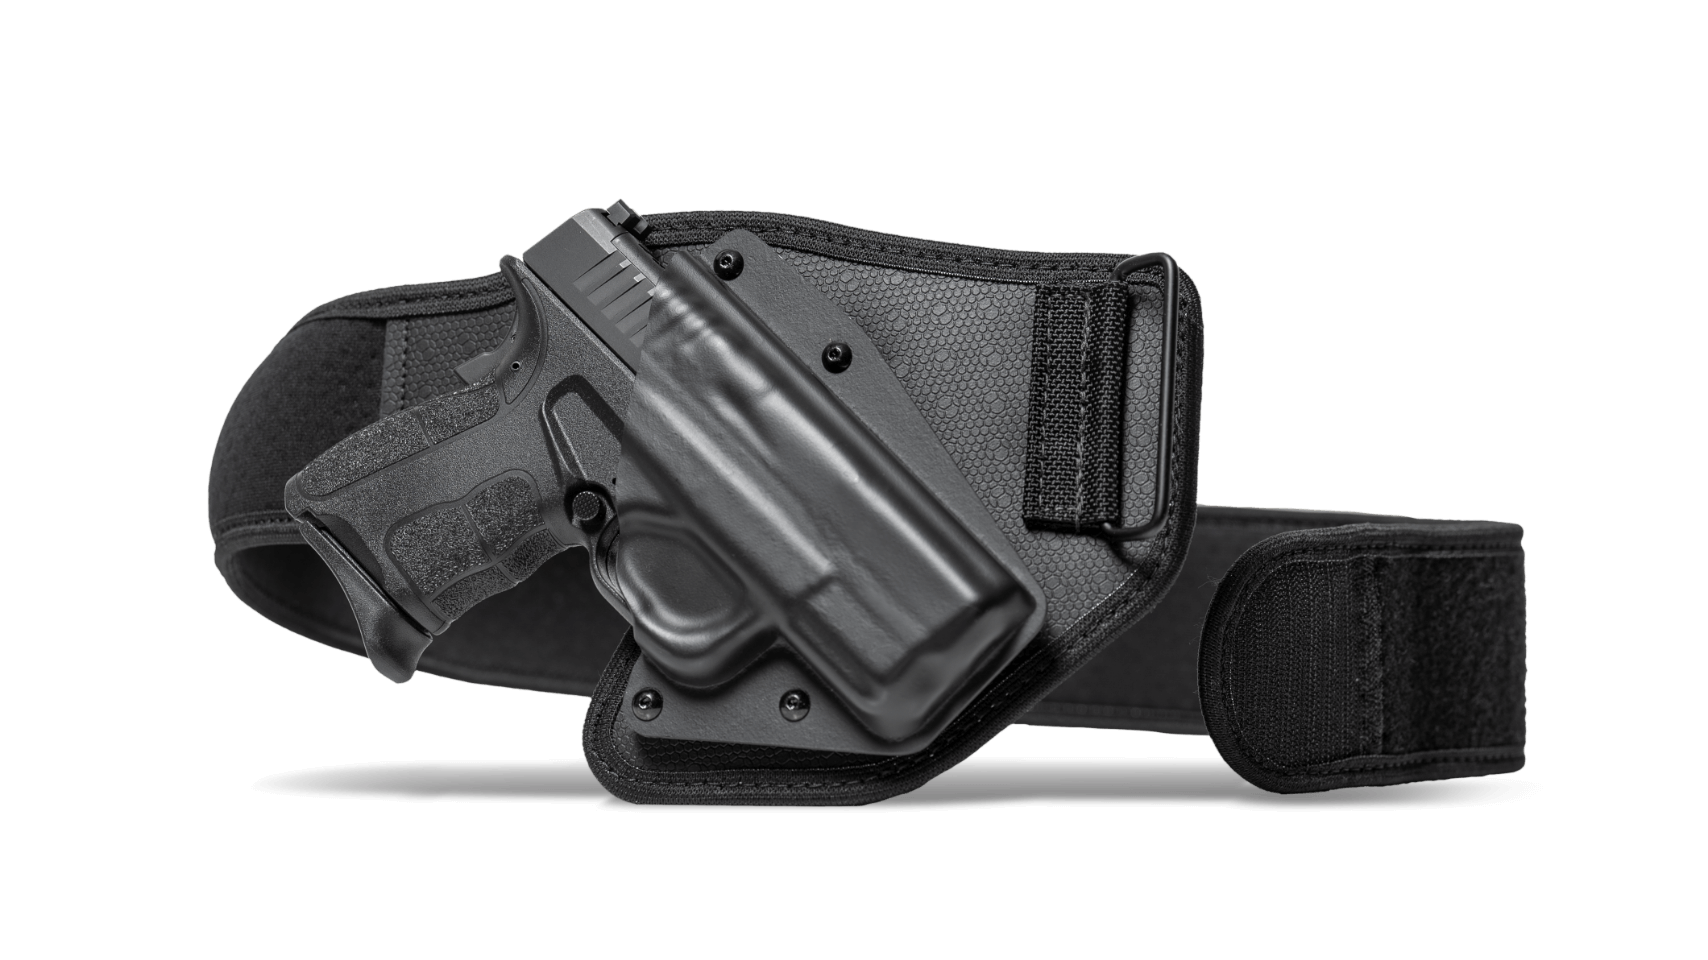 Low-Pro Belly Band Holster